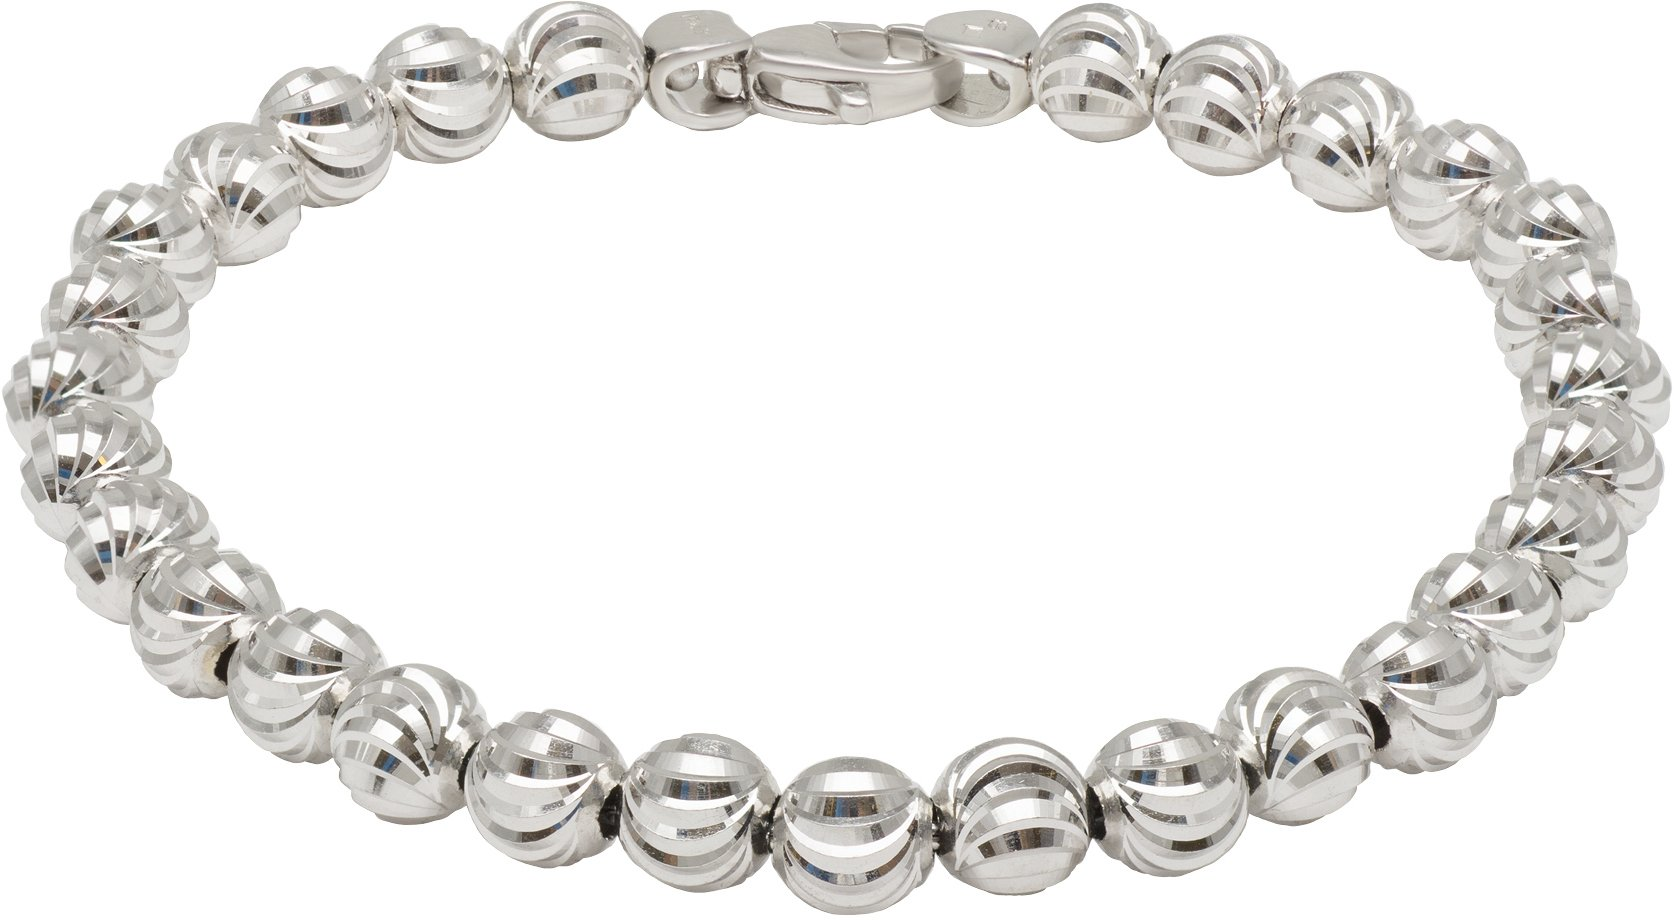 Officina Bernardi - Moon Collection - Bracelet 68B6 - Italian 925 Sterling Silver (7.5 Inches)